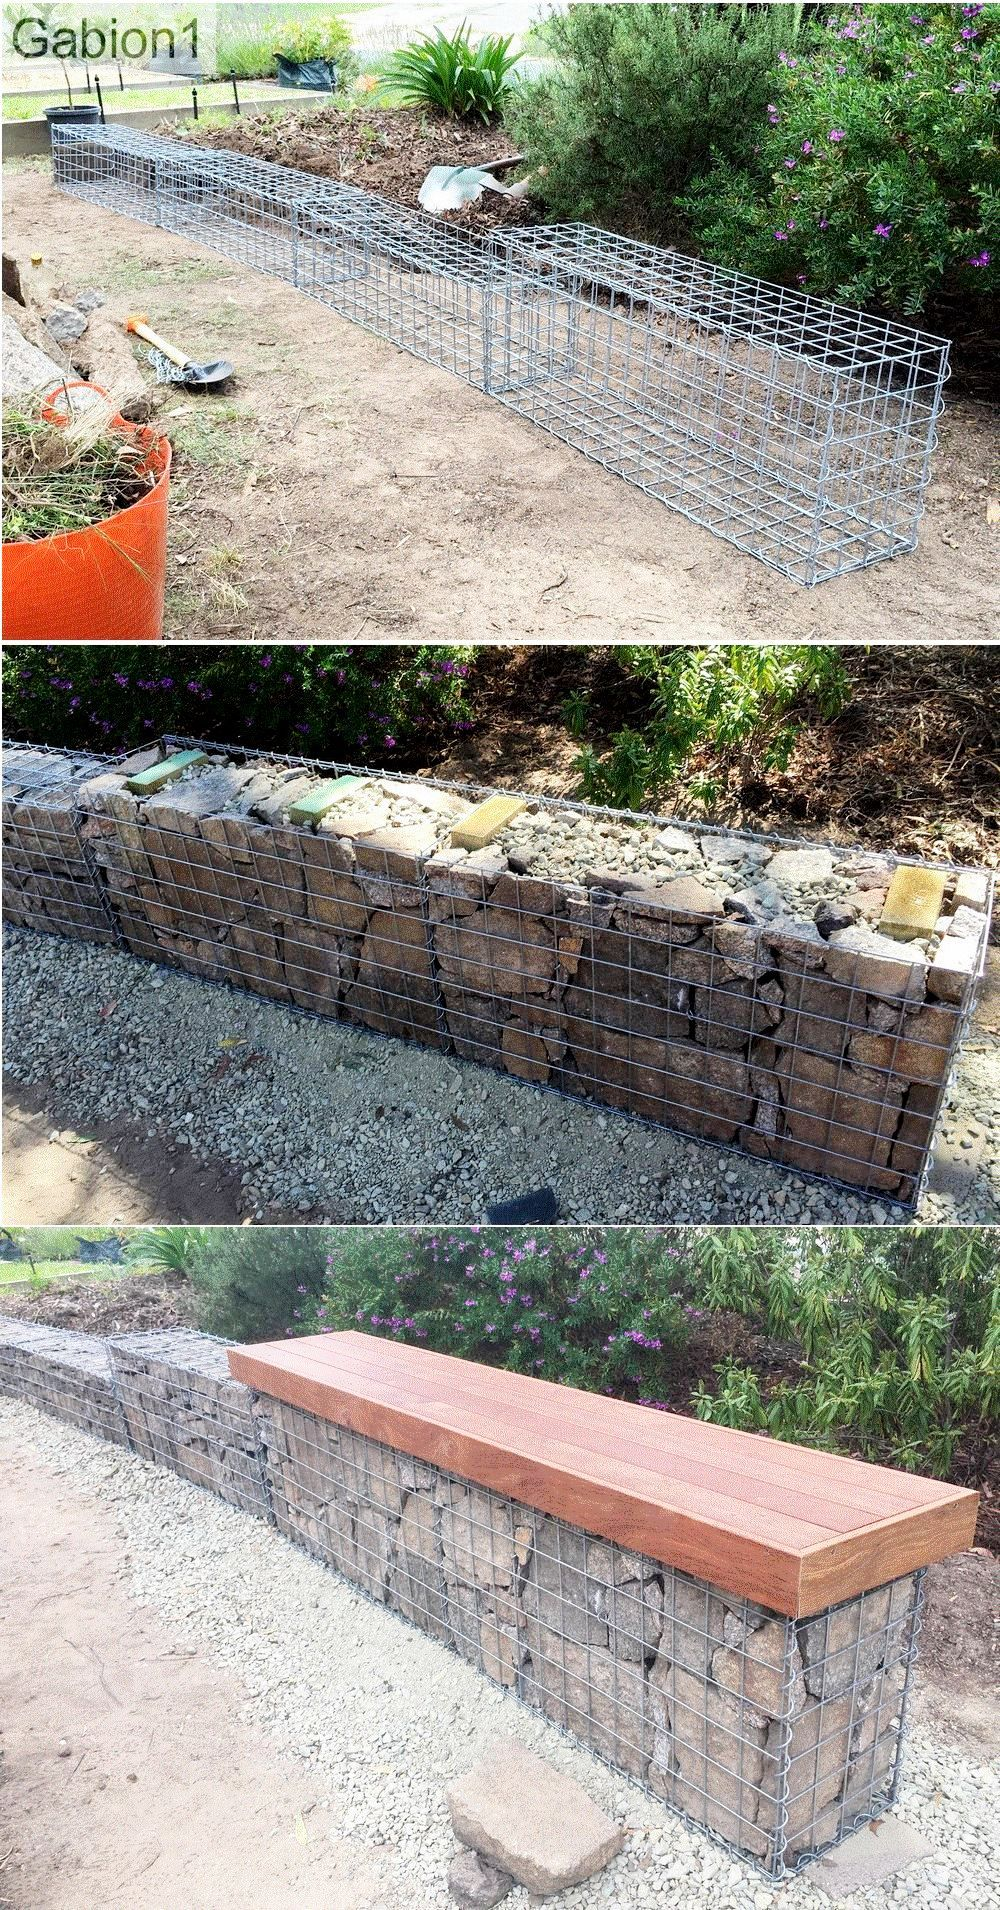 small garden gabion wall with seat showing hand stacked 2nd